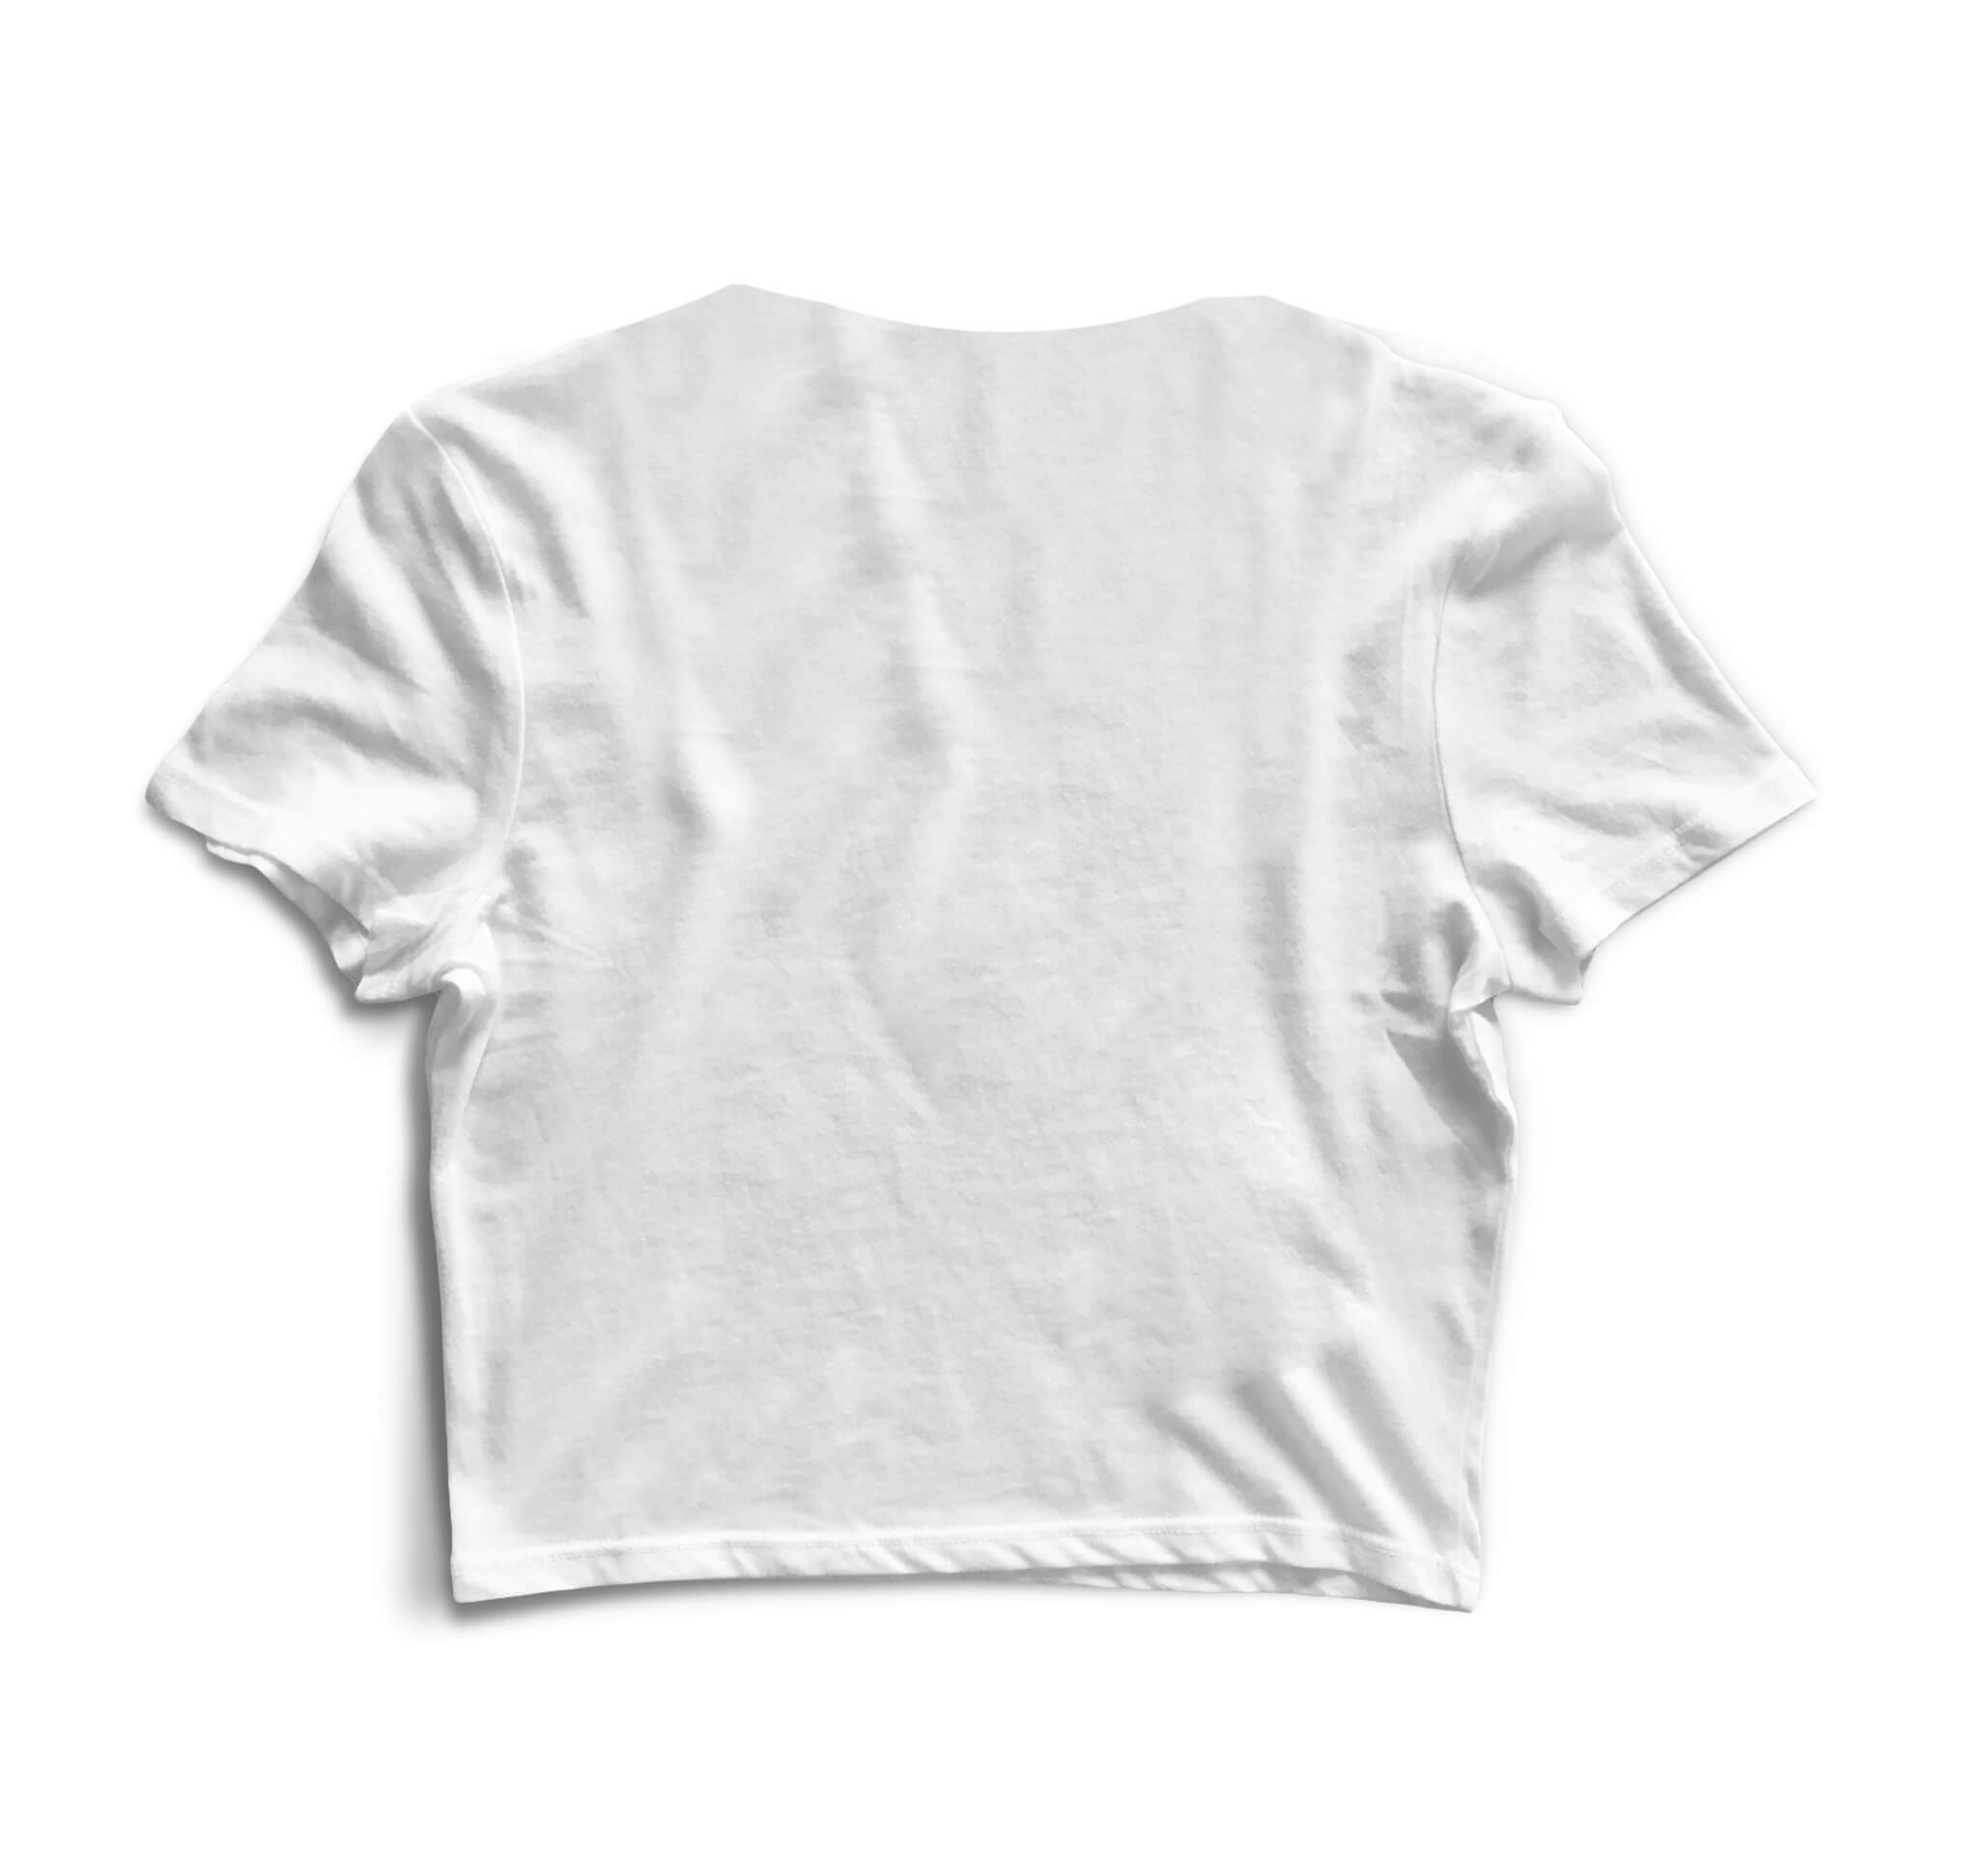 Blusa Cropped Morena Deluxe Space Branco